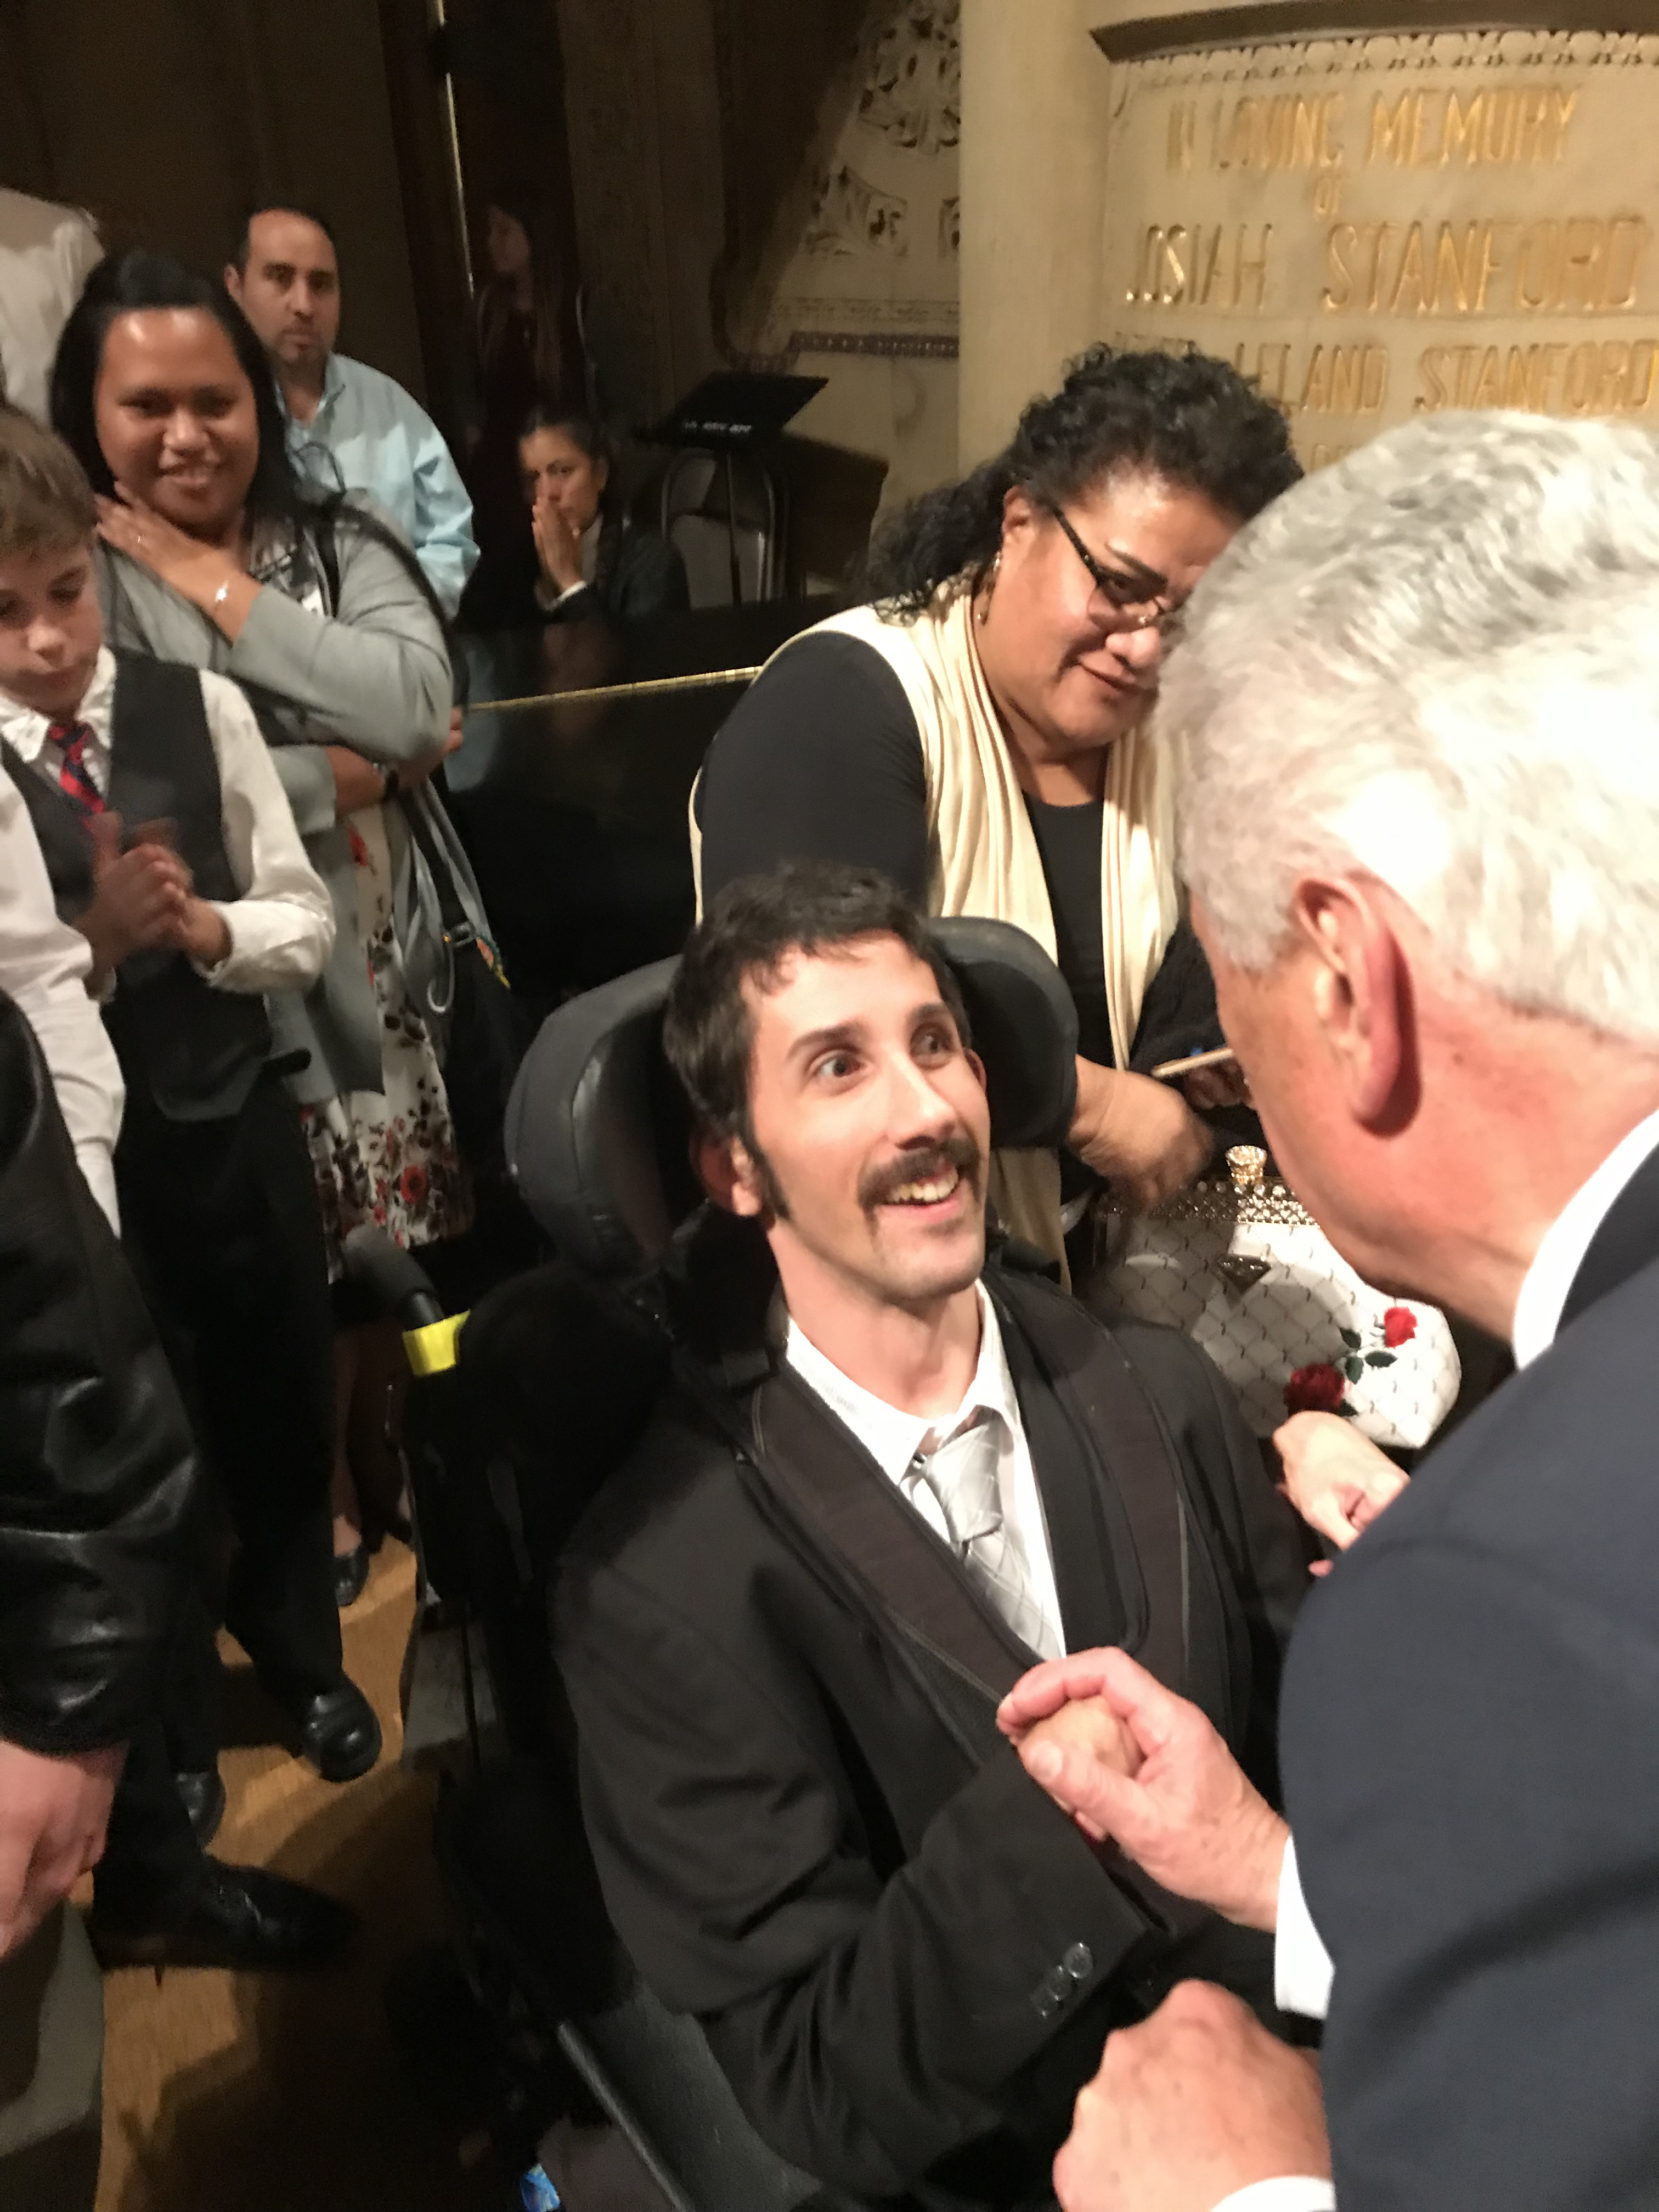 Elder Dieter F. Uchtdorf meets with students in Palo Alto, California, for a devotional sponsored by the Latter-day Saint Student Association at Stanford University on Oct. 27, 2019.